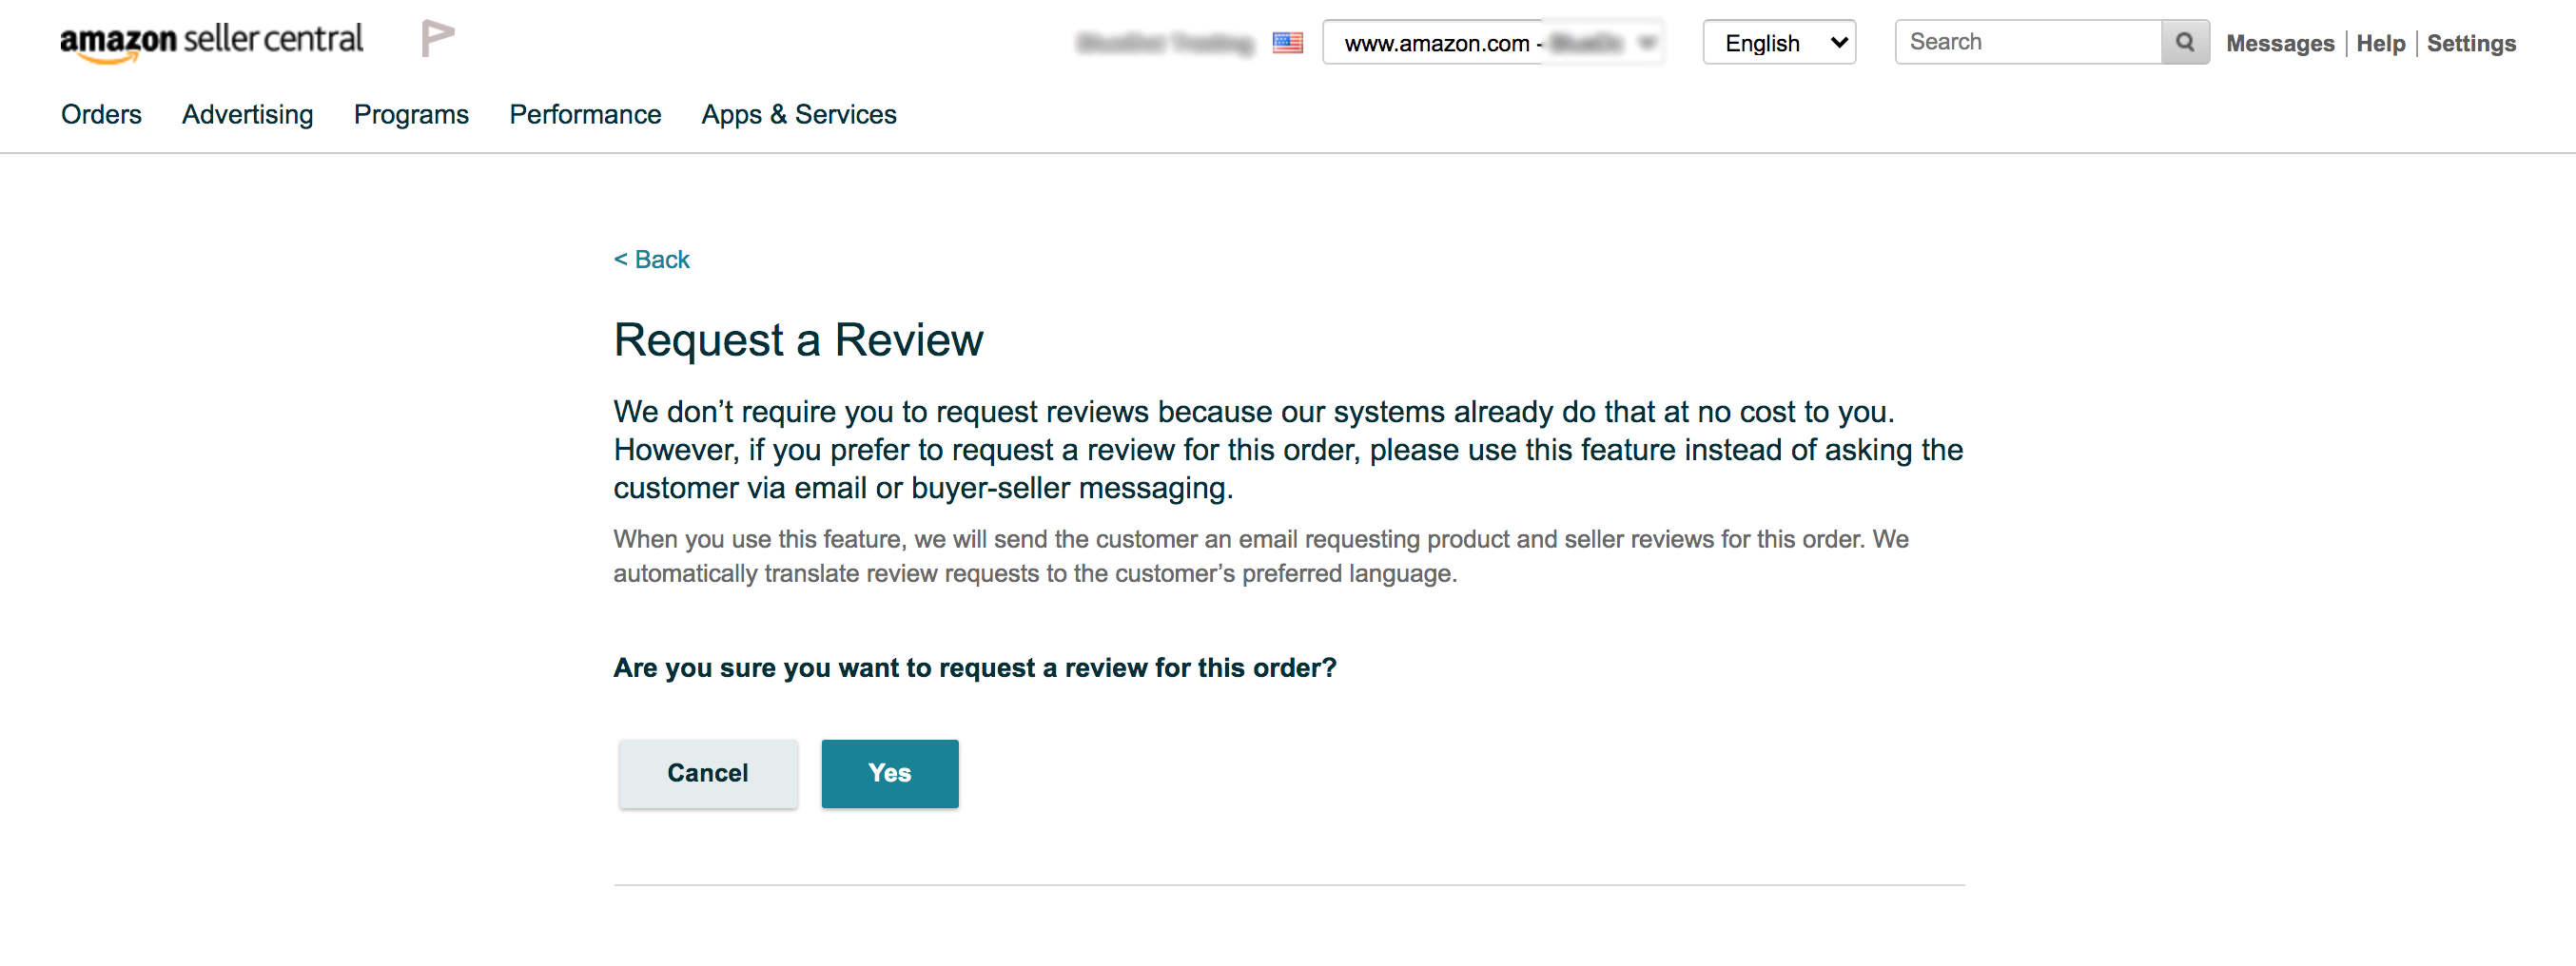 amazon-rr-4-request-review.png